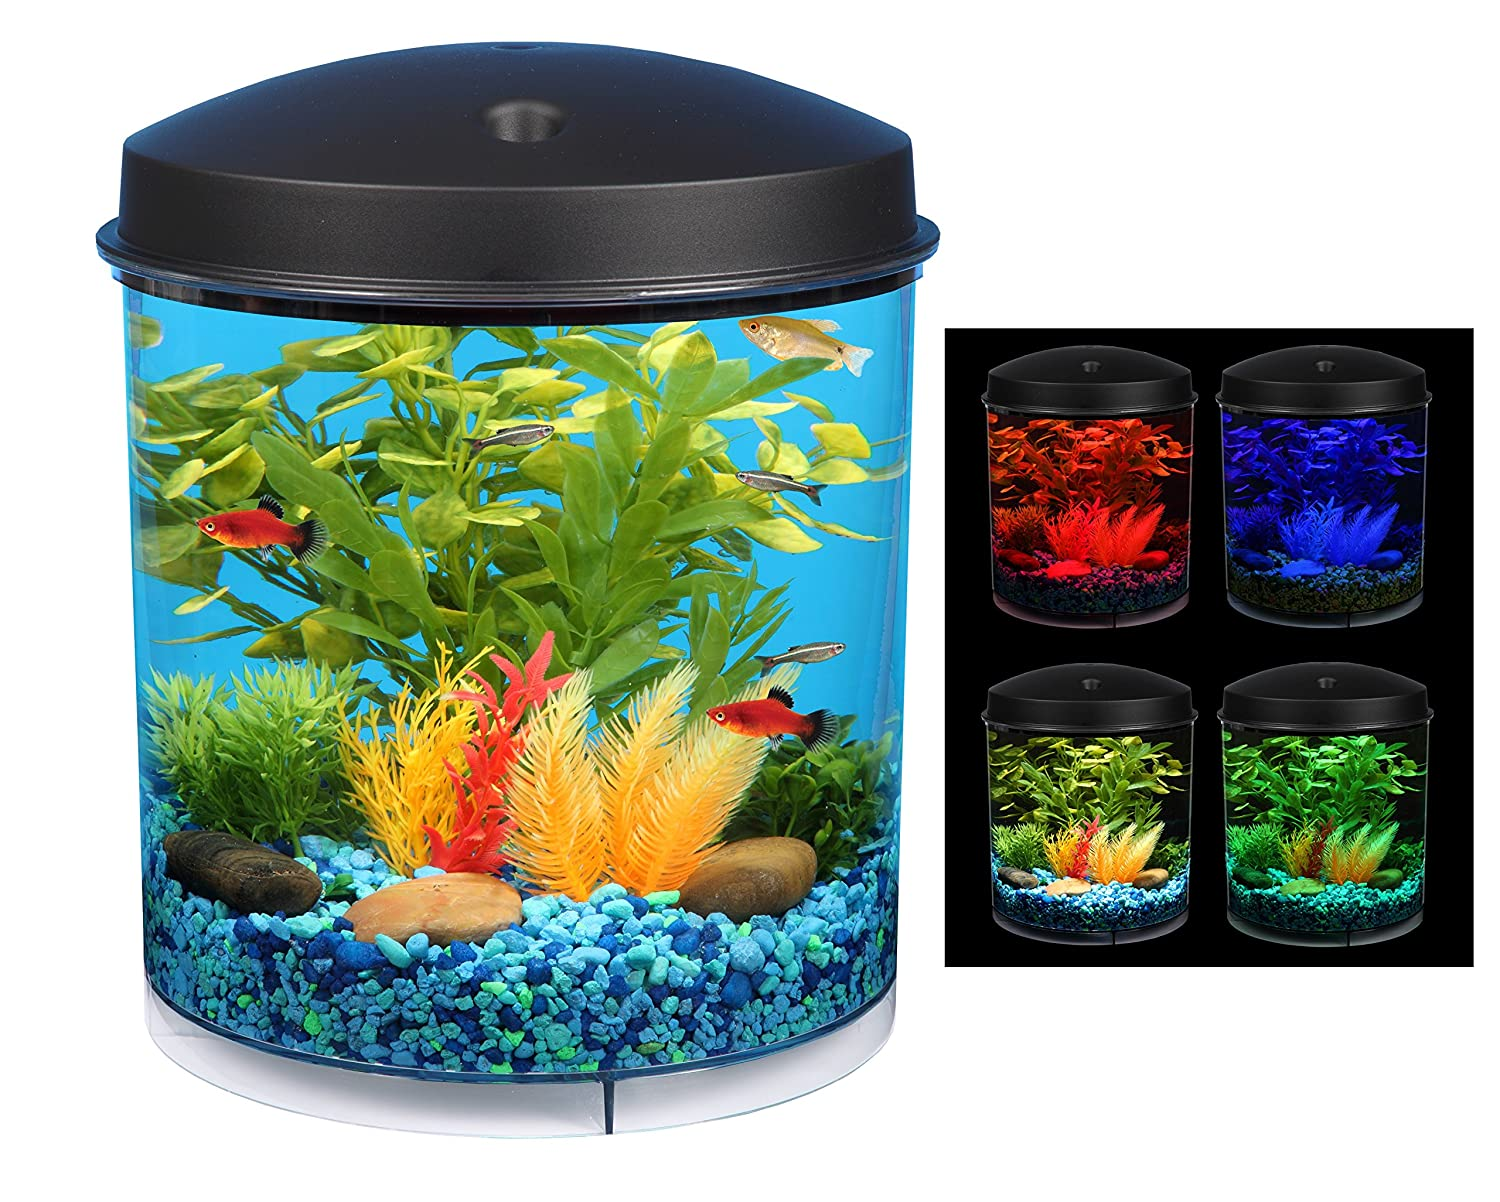 Aquarium fish tank led light decoration 2 gallon w for Fish tank lighting